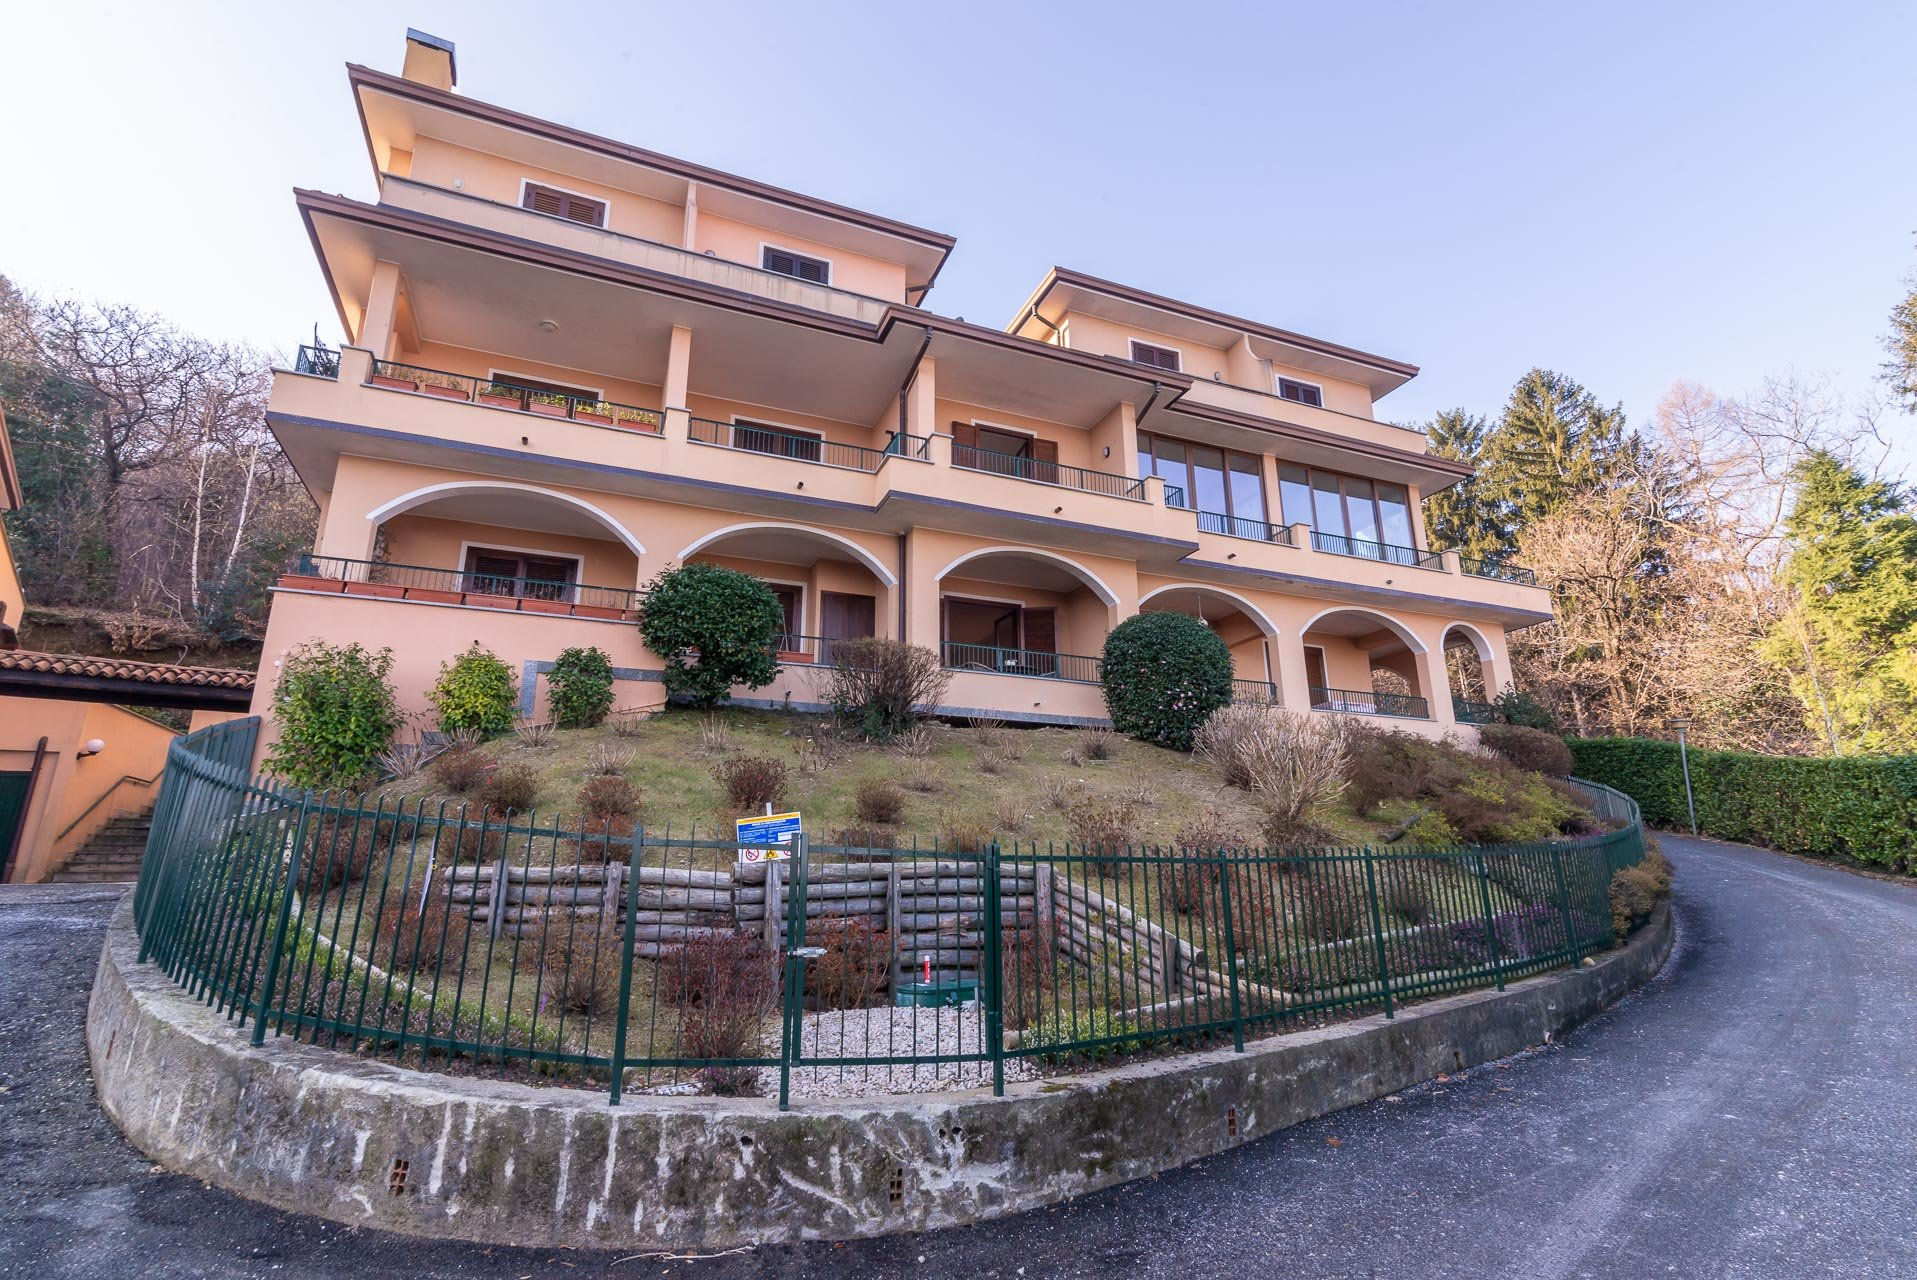 Apartment for sale in Stresa in a residence - outside